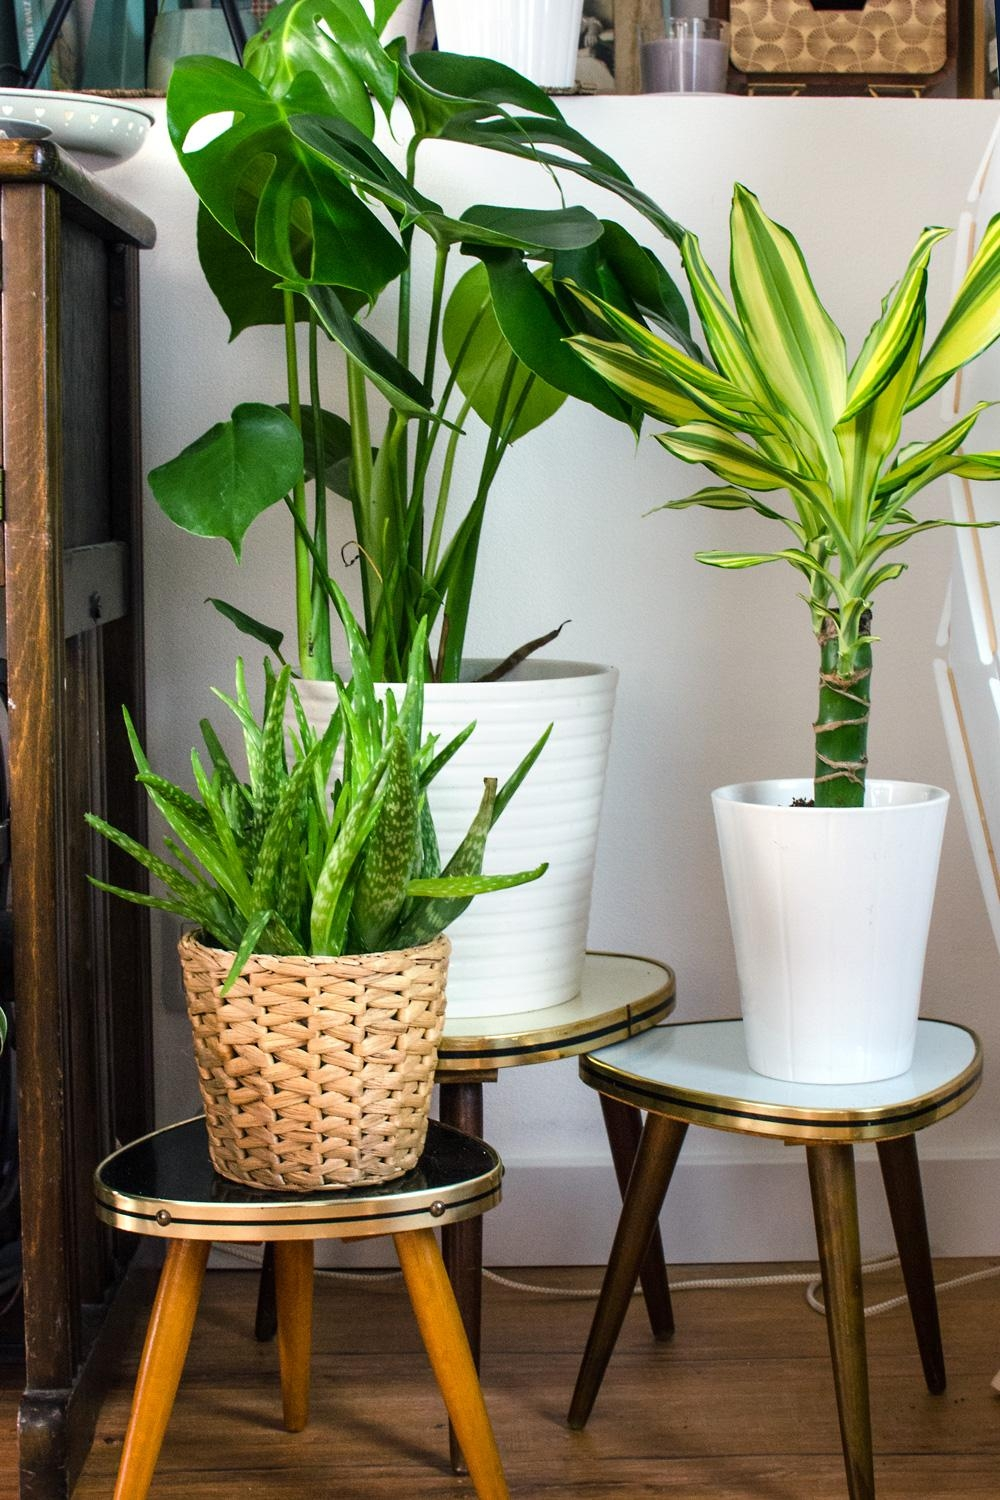 Midcentury Blumenhocker für den Urban Jungle. Monstera & Co. #plants #indoorplants #pflanzen #boho #monstera #midcentury